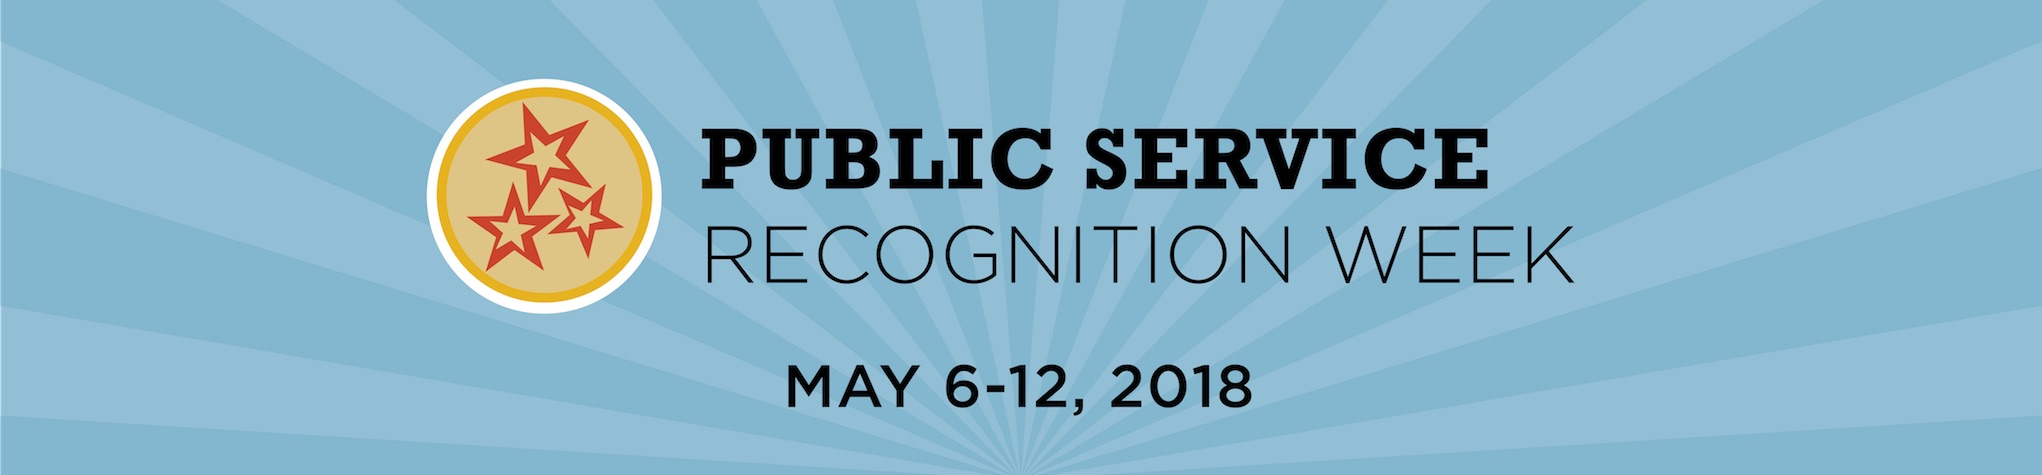 Public Service Recognition Week graphis